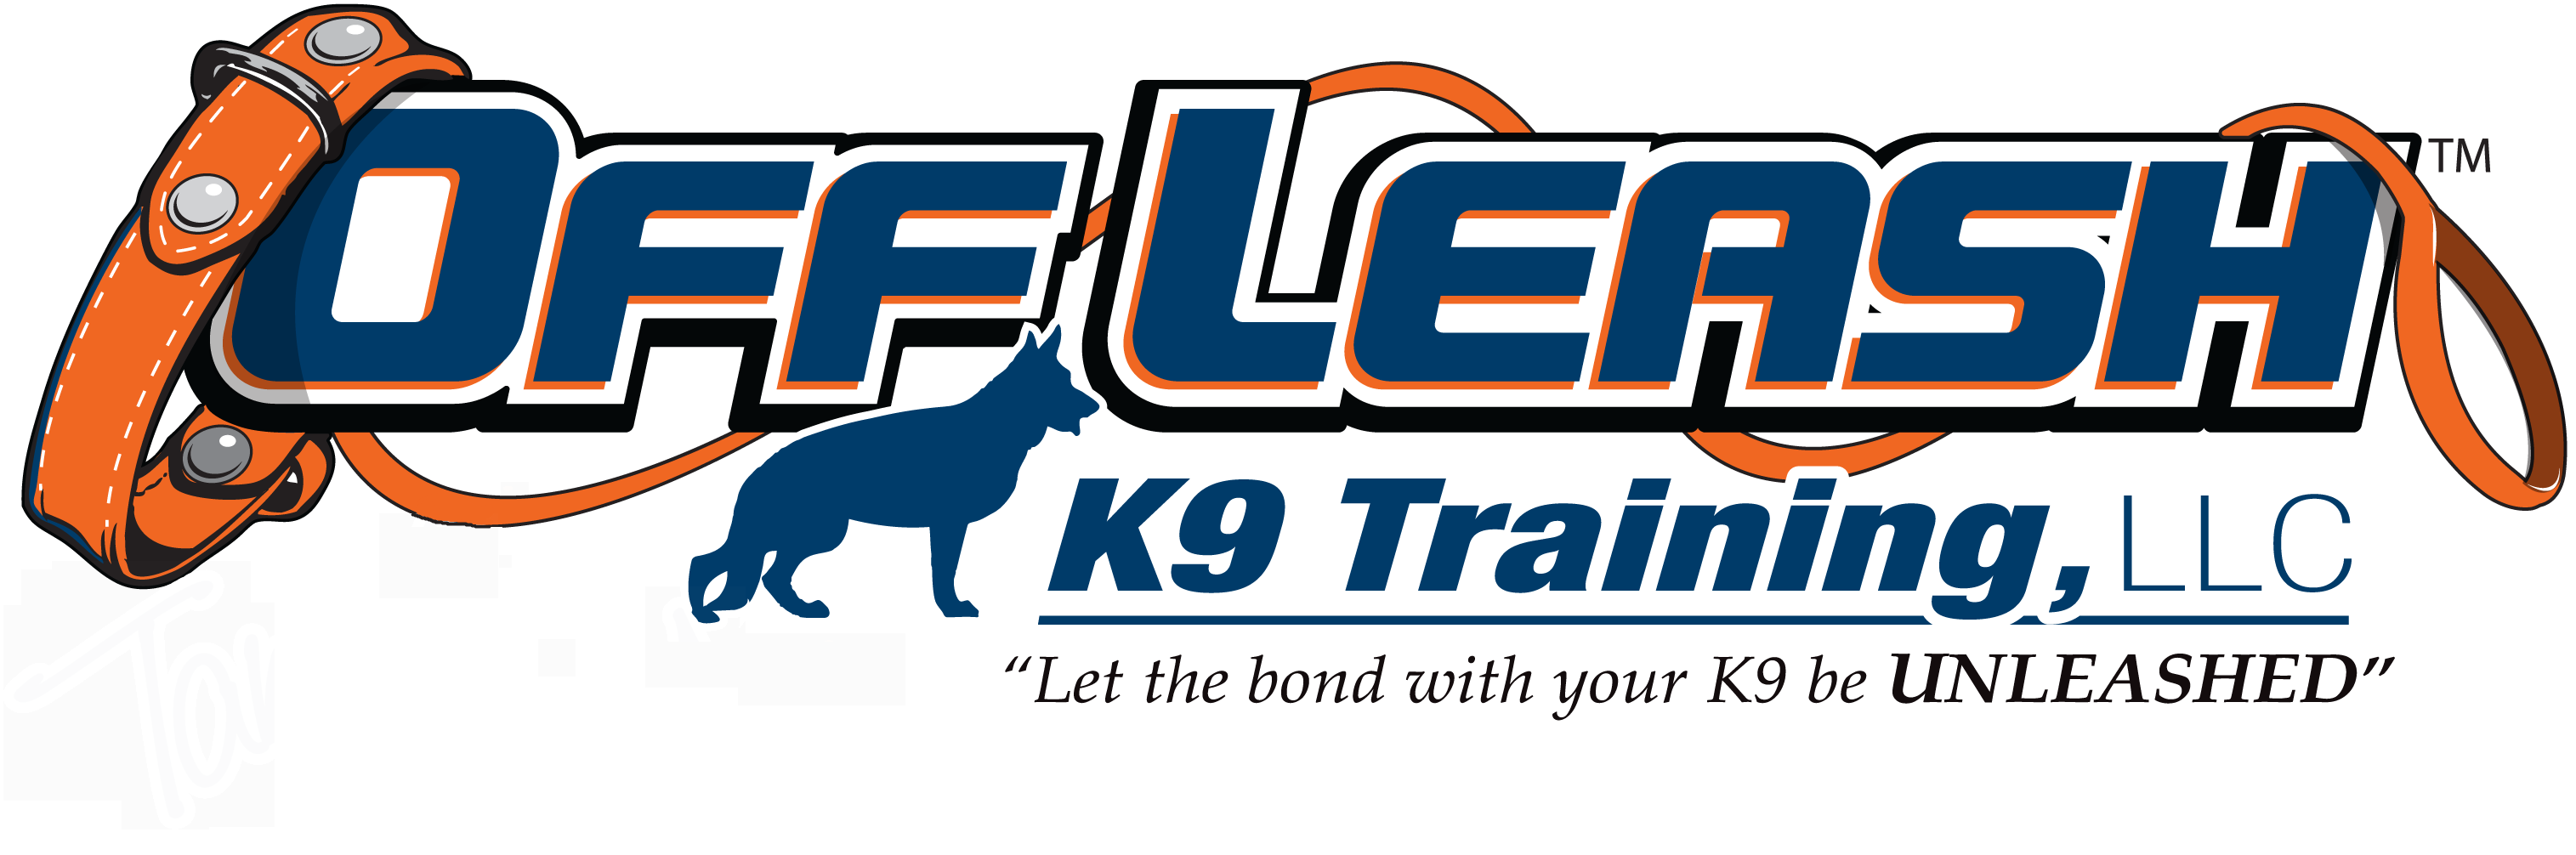 Off Leash K9 Dog Trainers